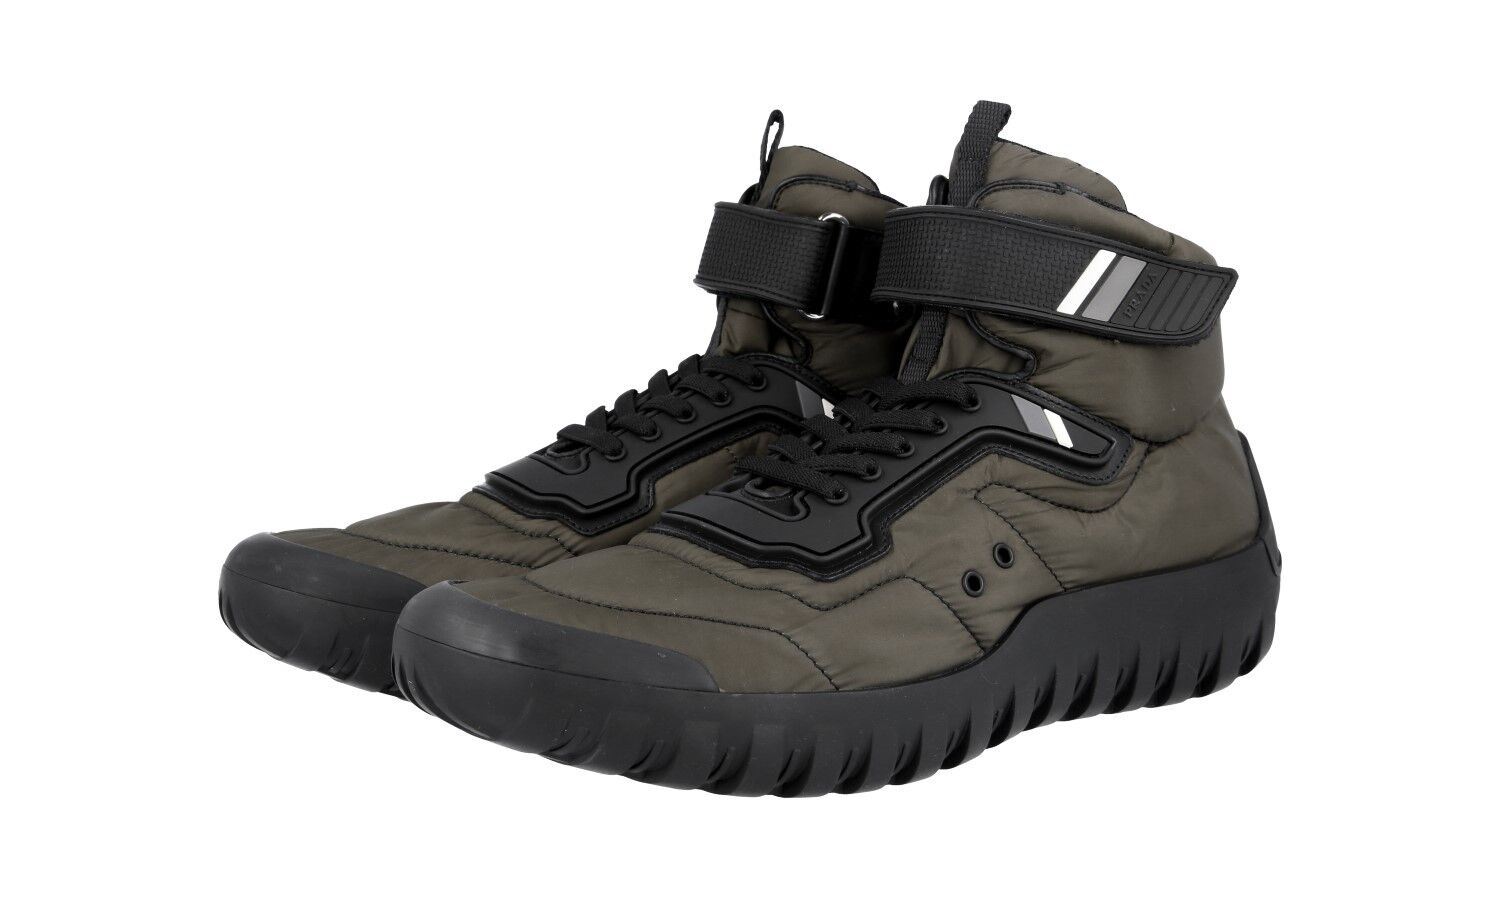 shoes HIGH-TOP SNEAKER PRADA LUXUEUX 4T3131 MILITARE black 9 43 43,5